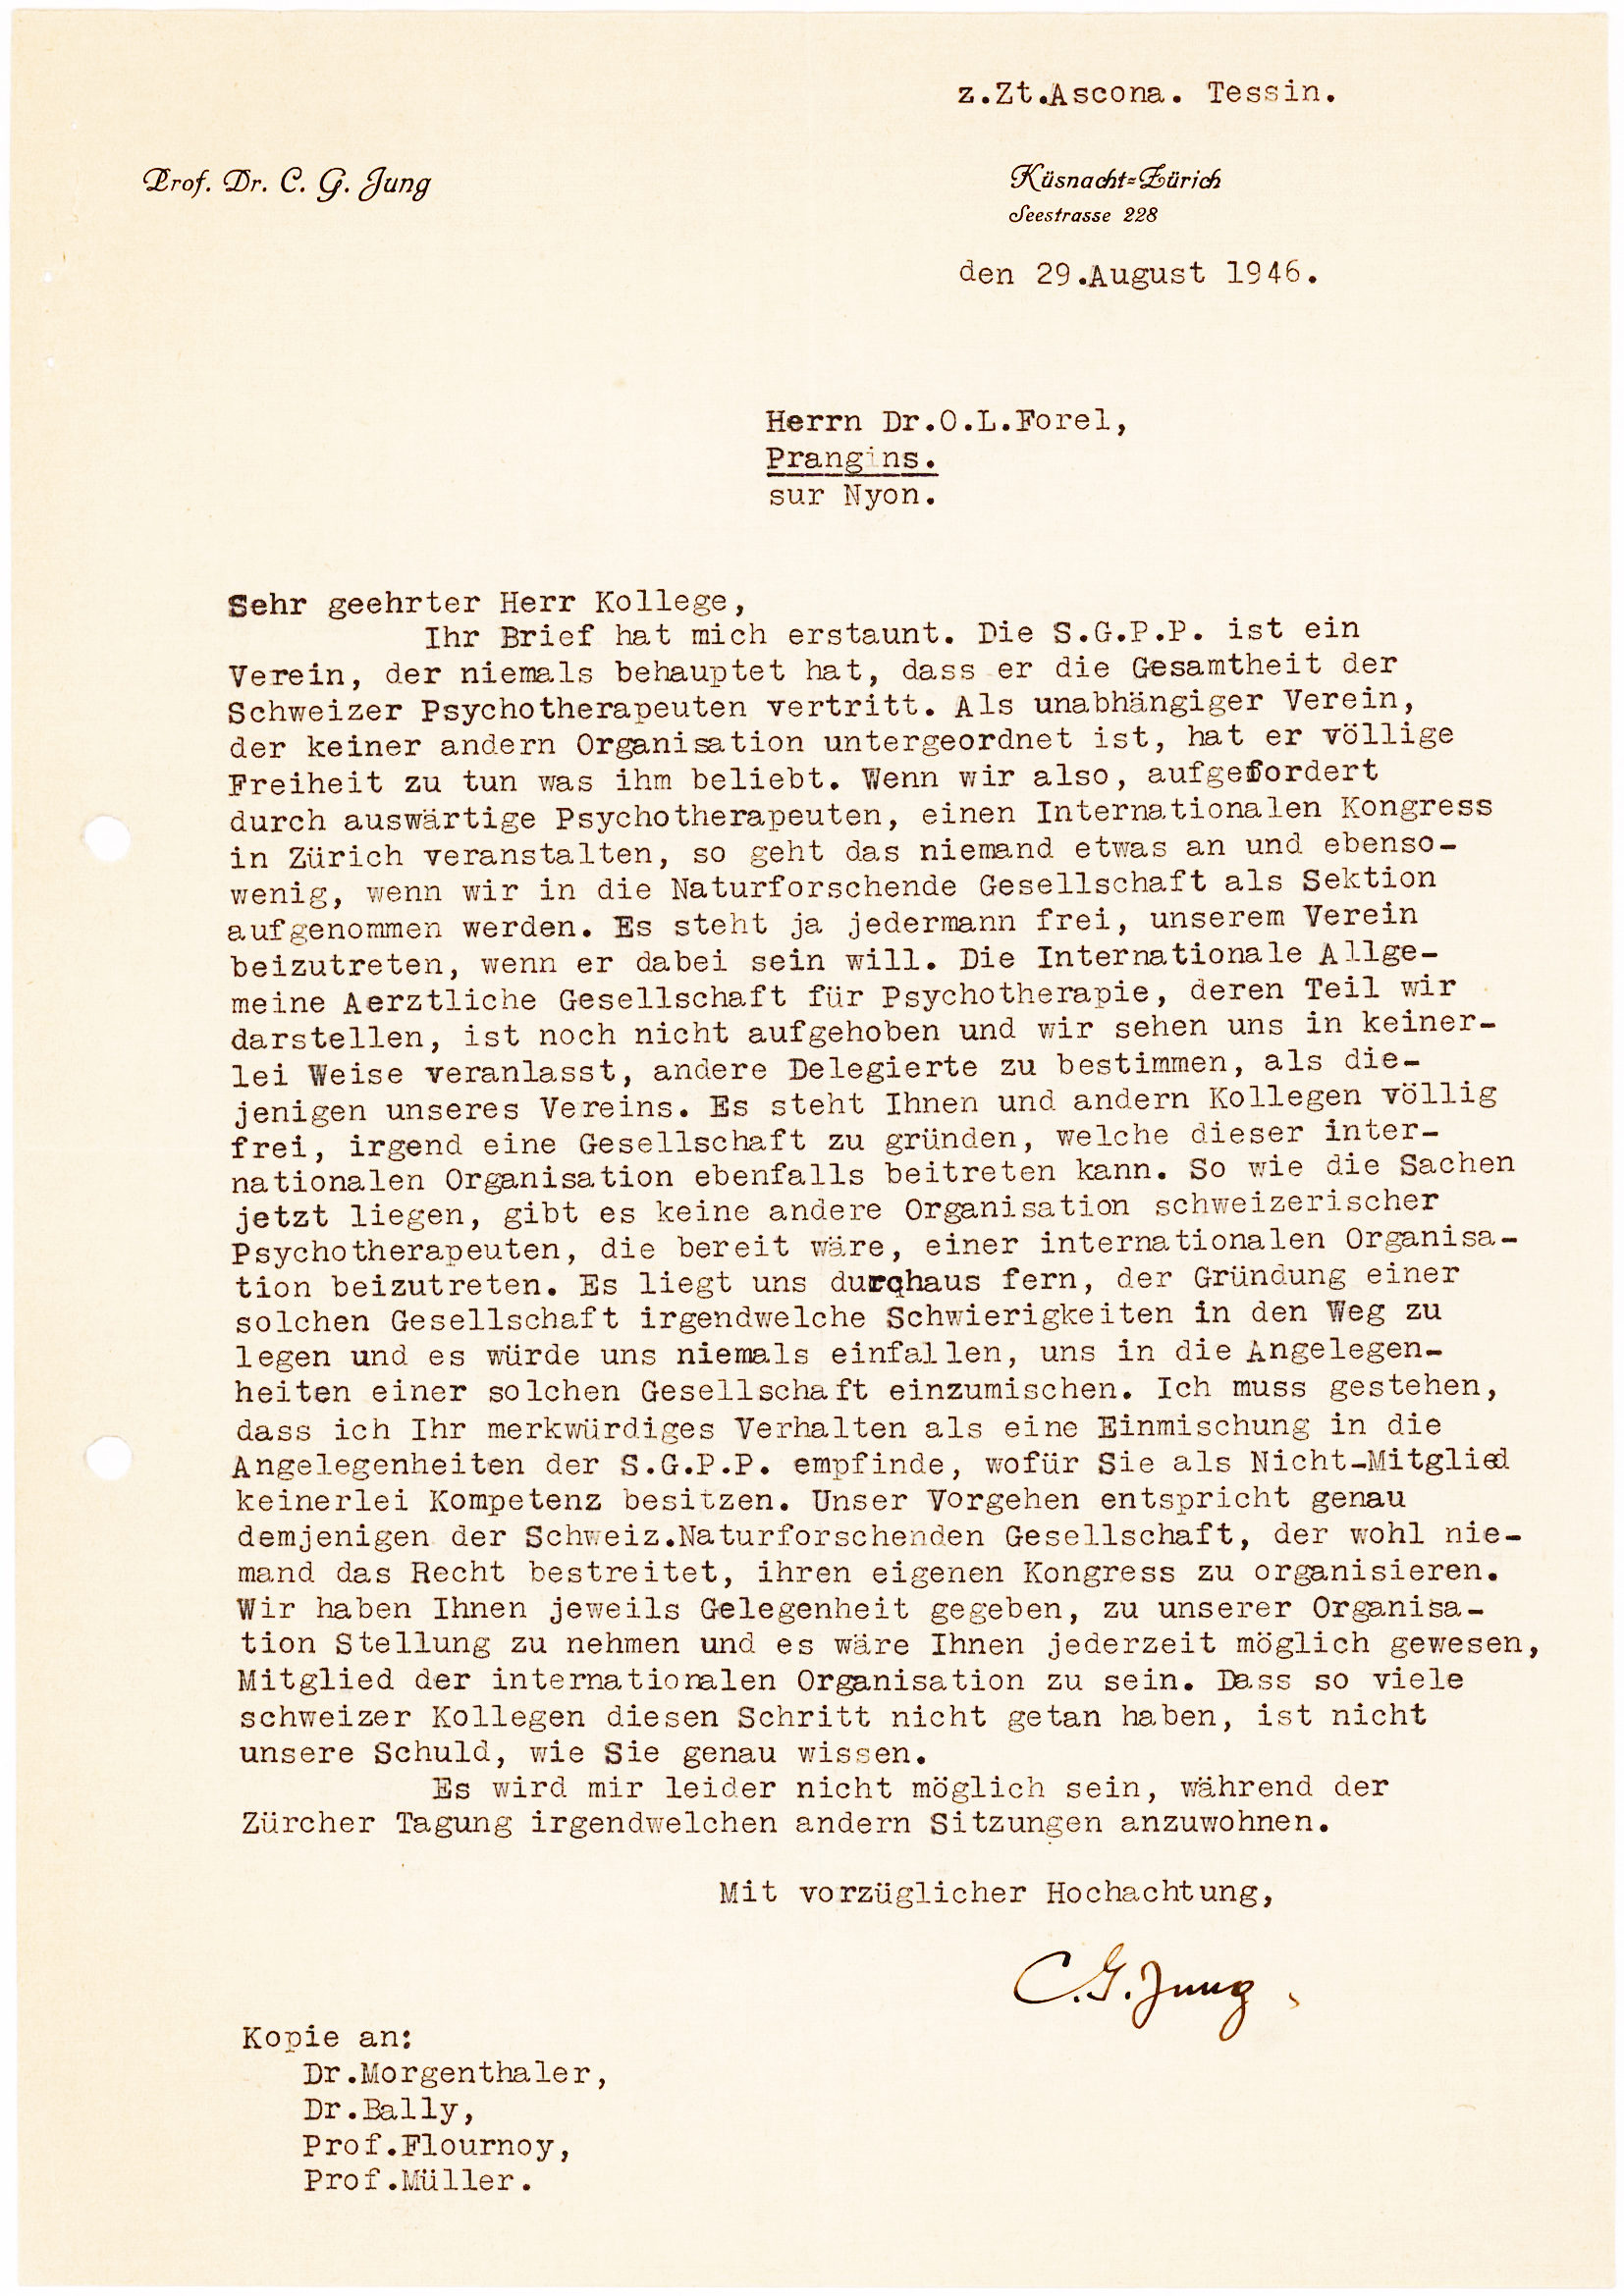 Testy Letter about the Swiss Society for Psychiatry and Psychotherapy